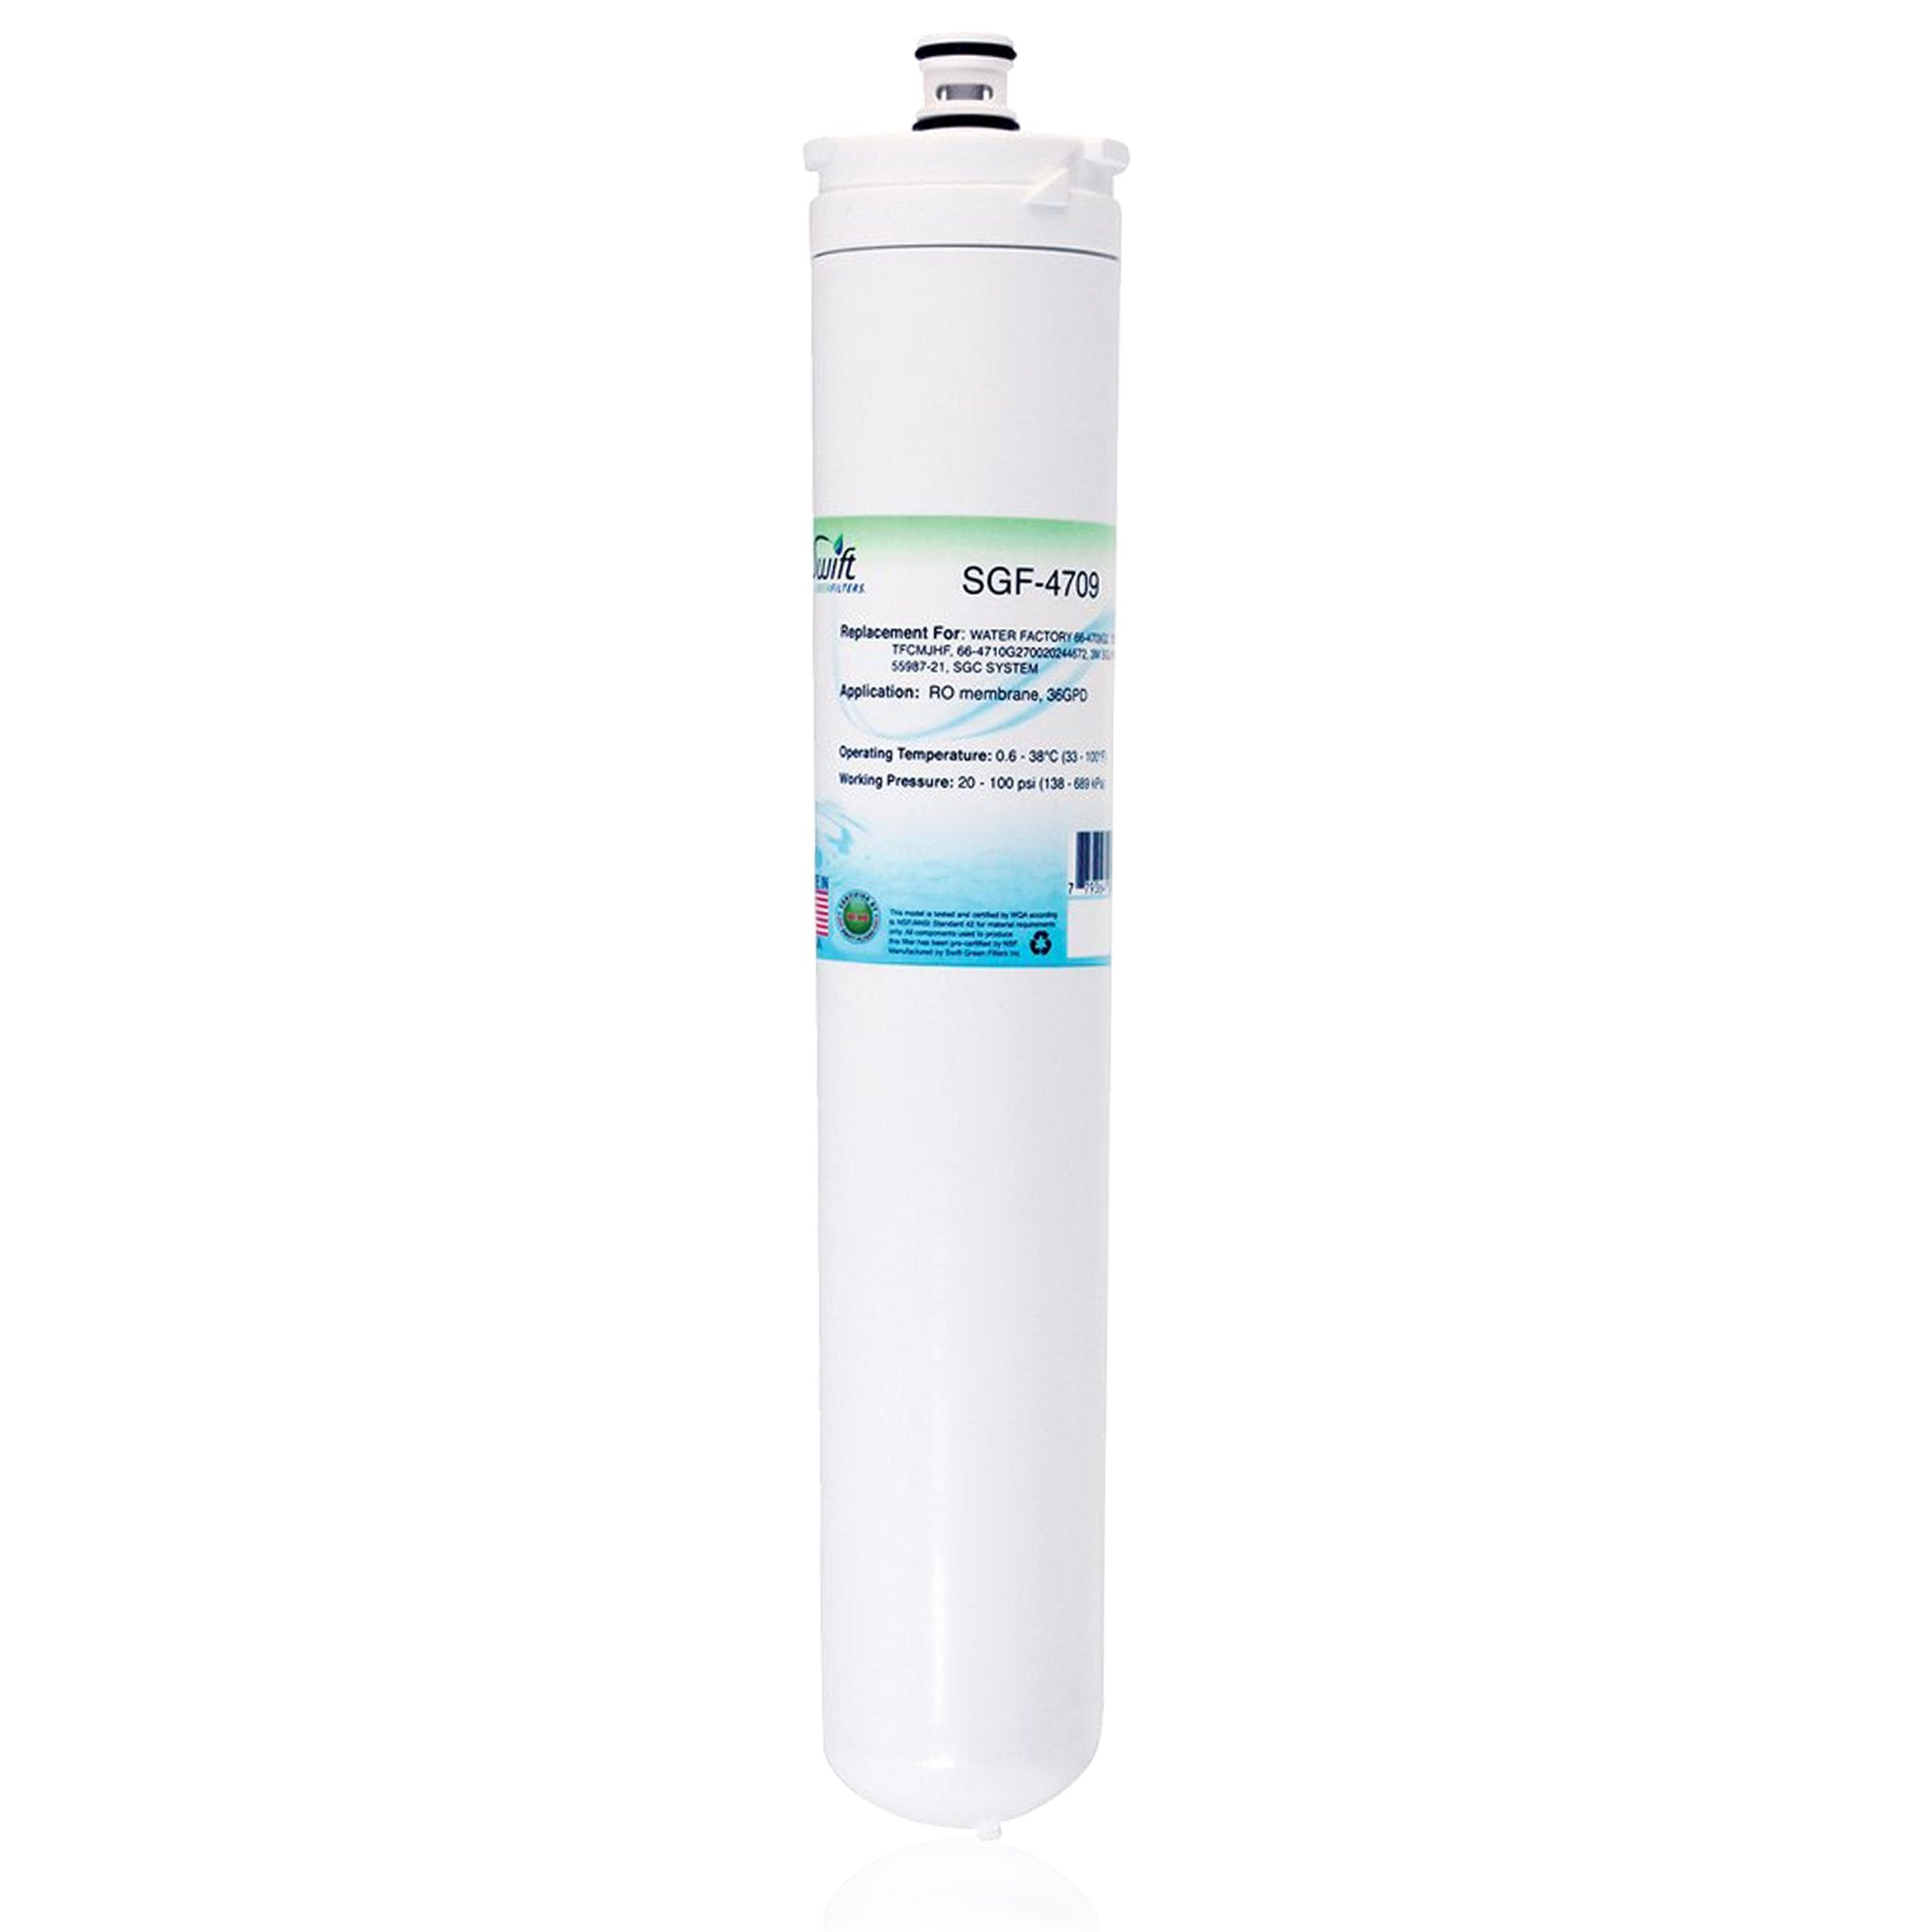 Replacement for 3M Water Factory 66-4709G2 Filter by Swift Green Filters SGF-4709